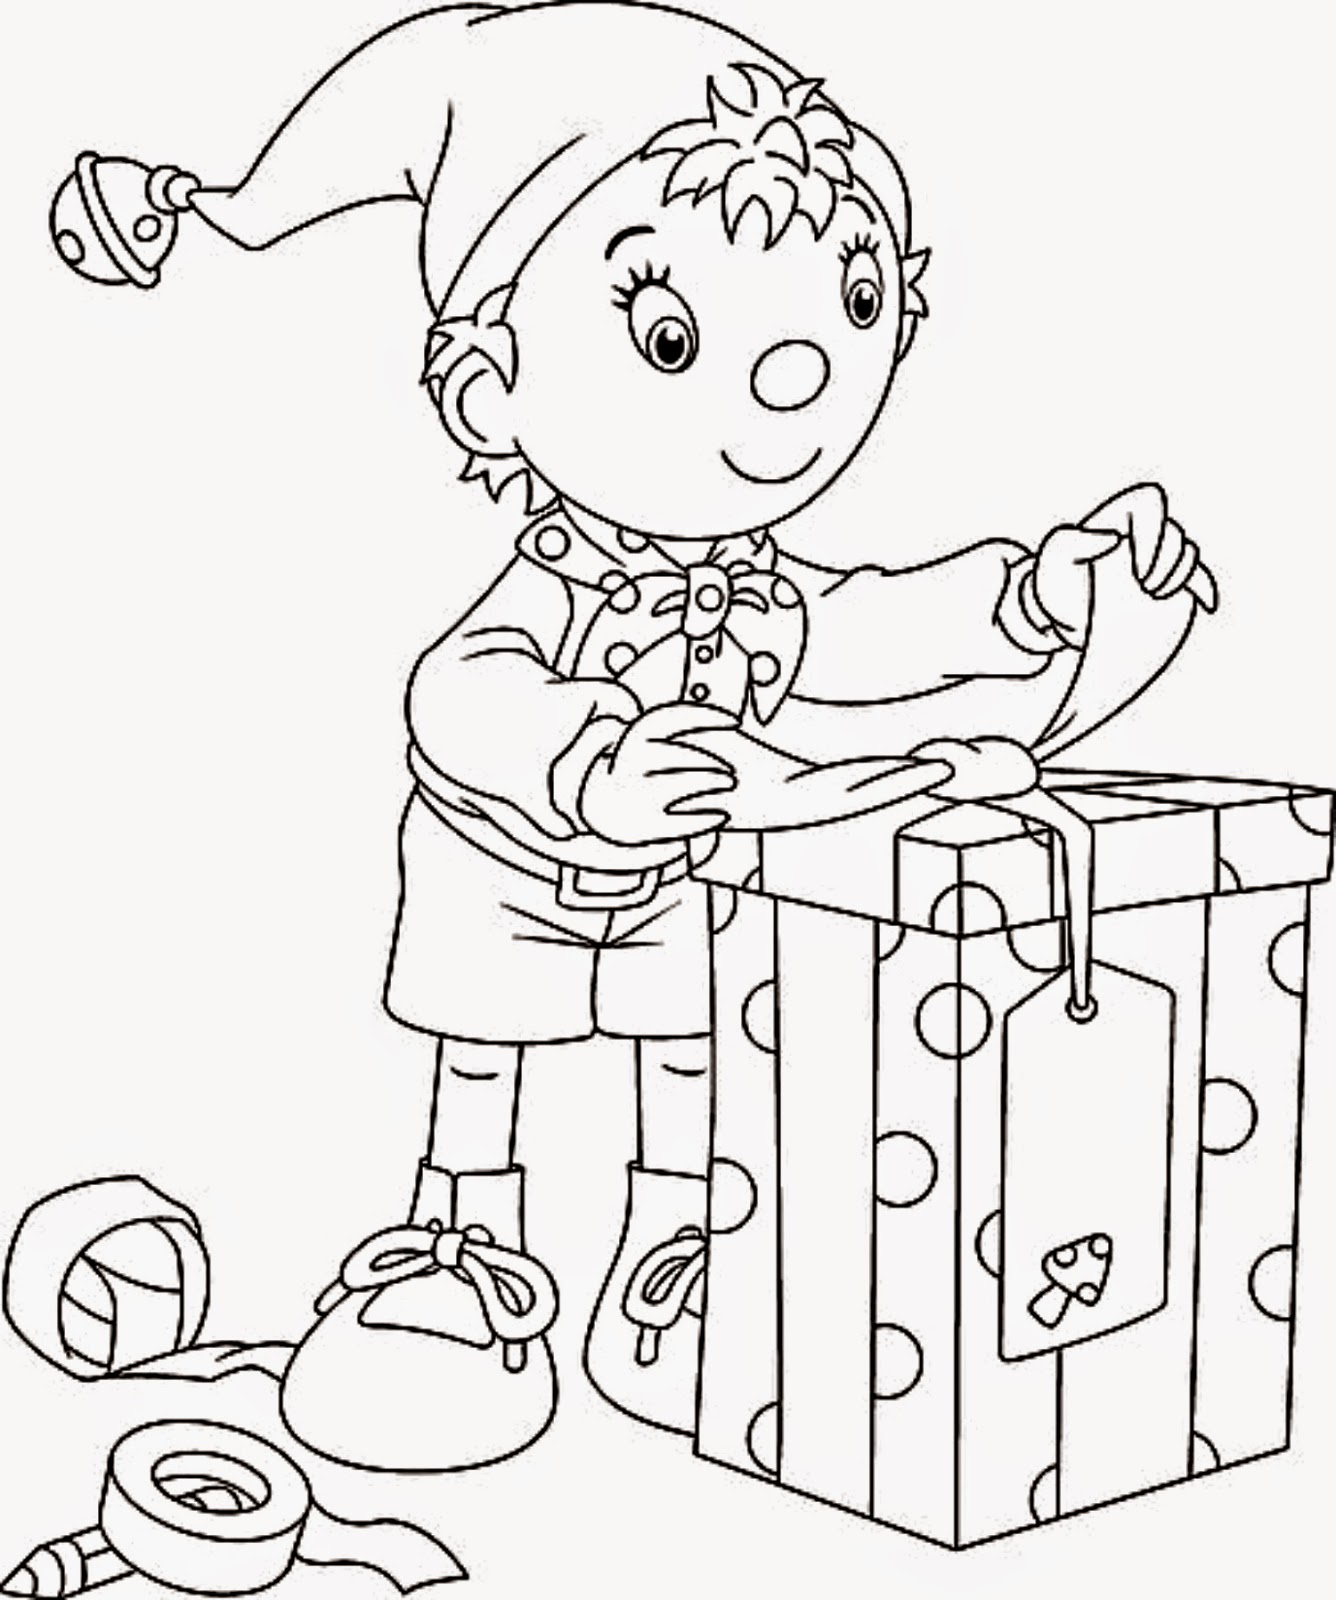 Coloring Pages: November 2014